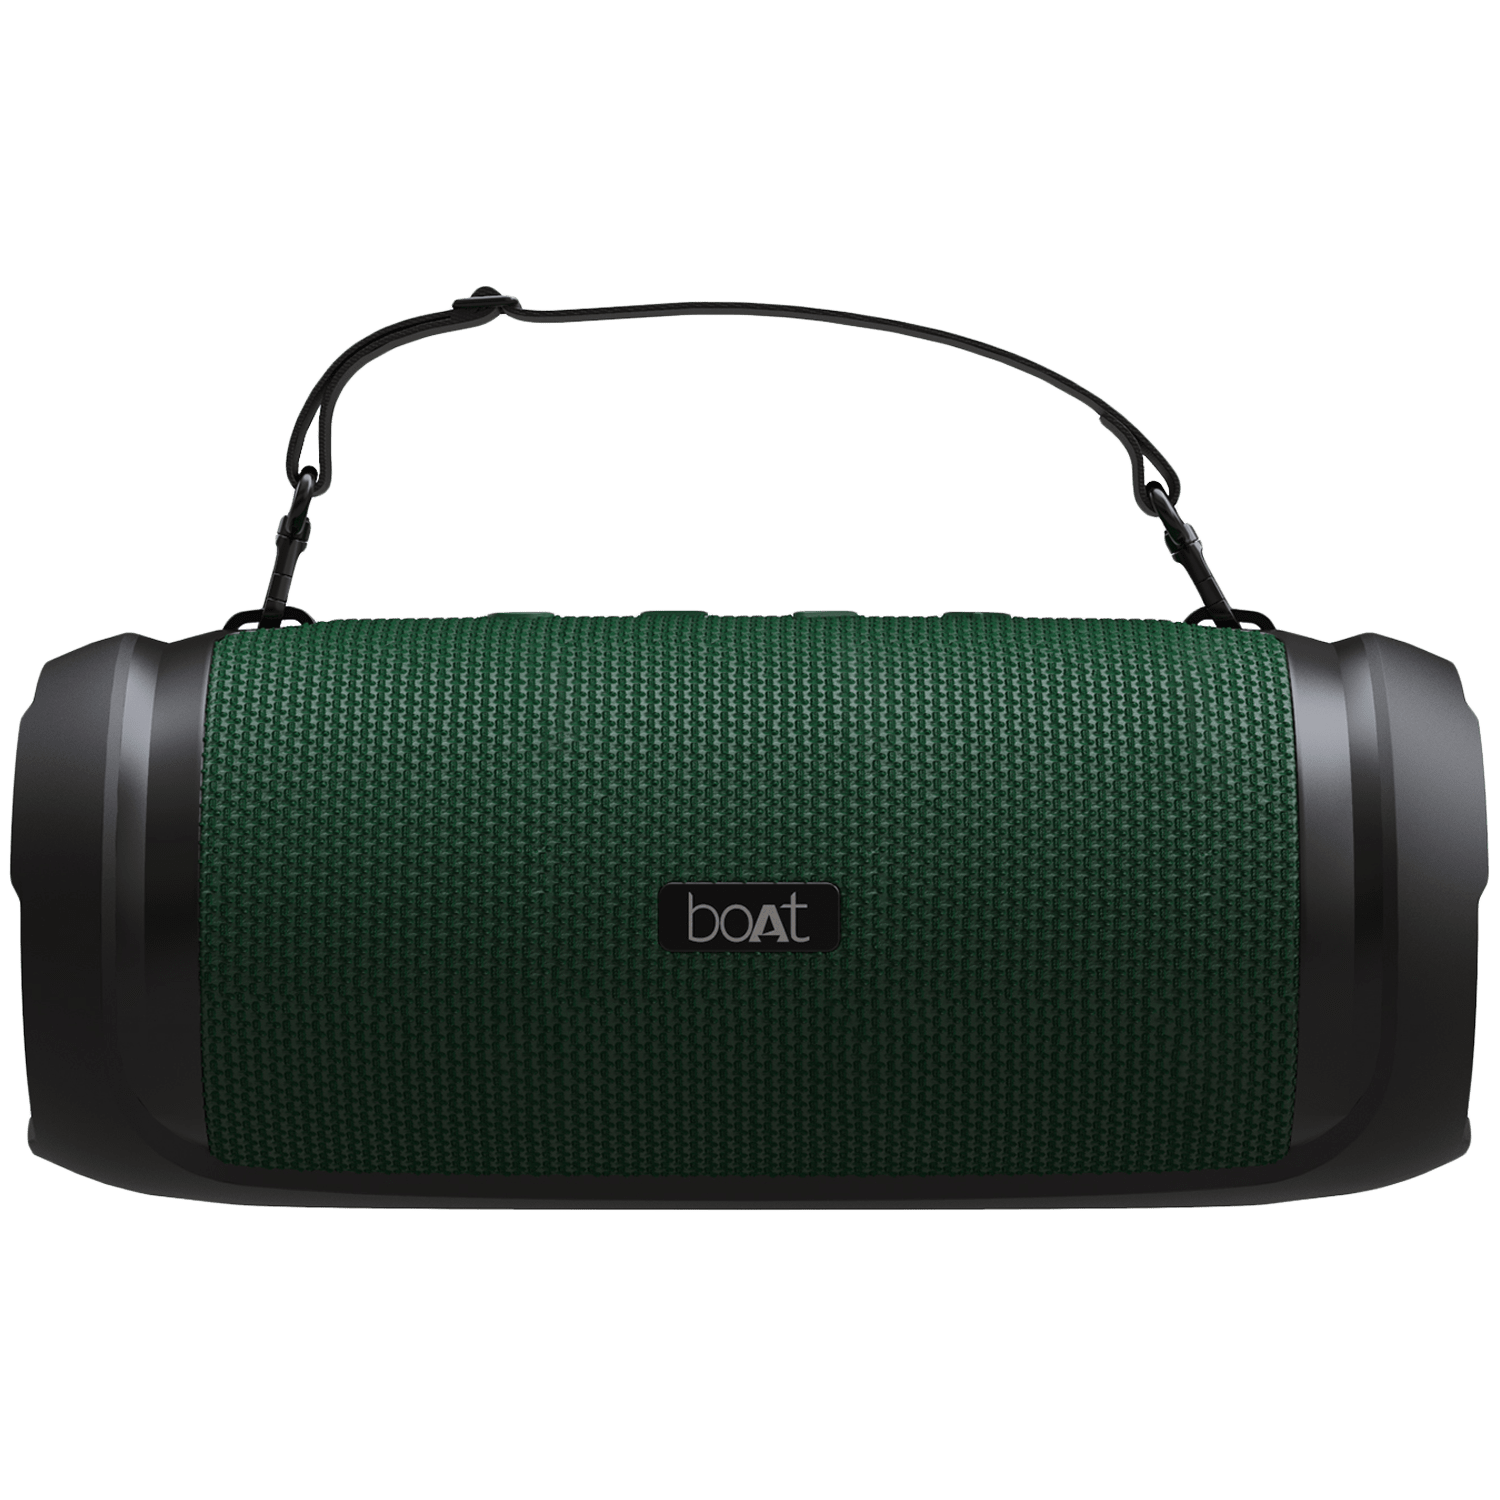 boAt Stone 1508 40 Watts Portable Bluetooth Speaker (Water Resistant, Army Green)